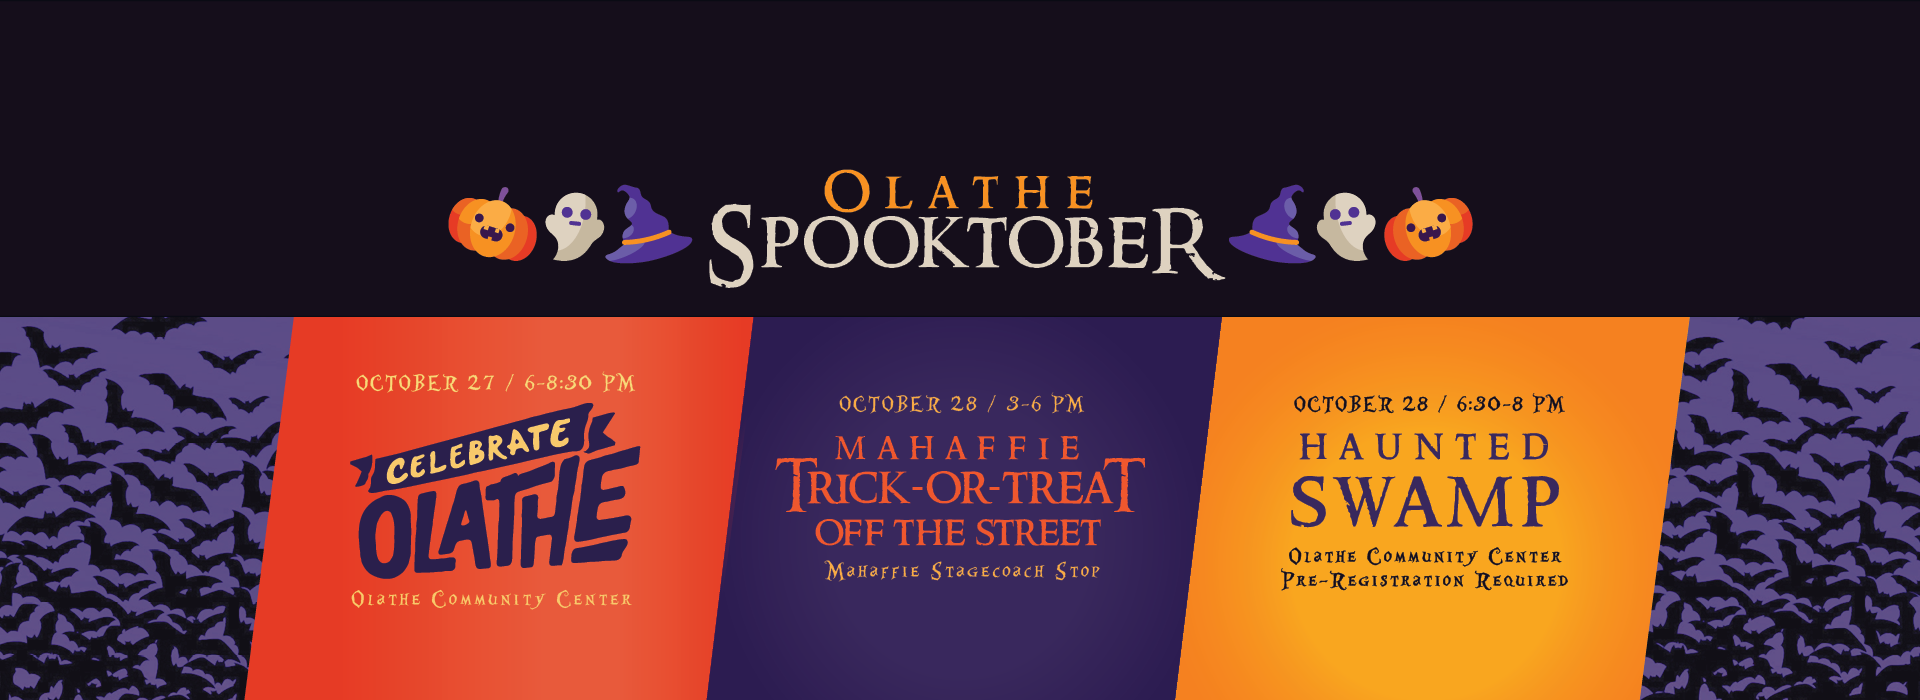 Spooktober Celebrate Olathe Trick-or-Treat Halloween